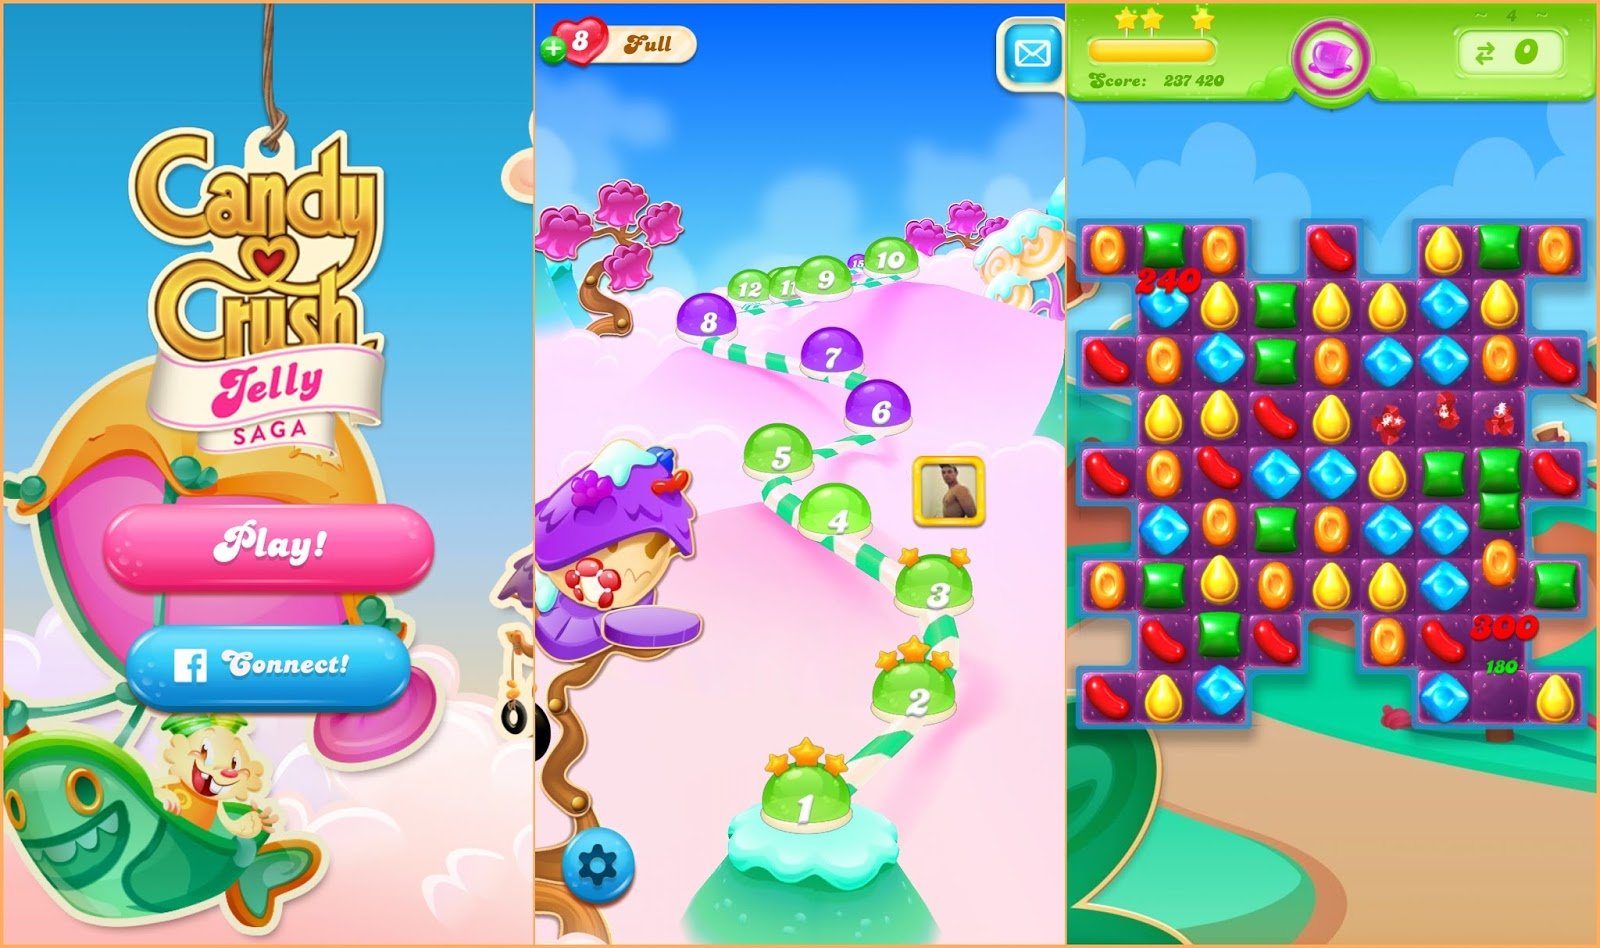 Image currently unavailable. Go to www.generator.cluehack.com and choose Candy Crush Jelly Saga image, you will be redirect to Candy Crush Jelly Saga Generator site.